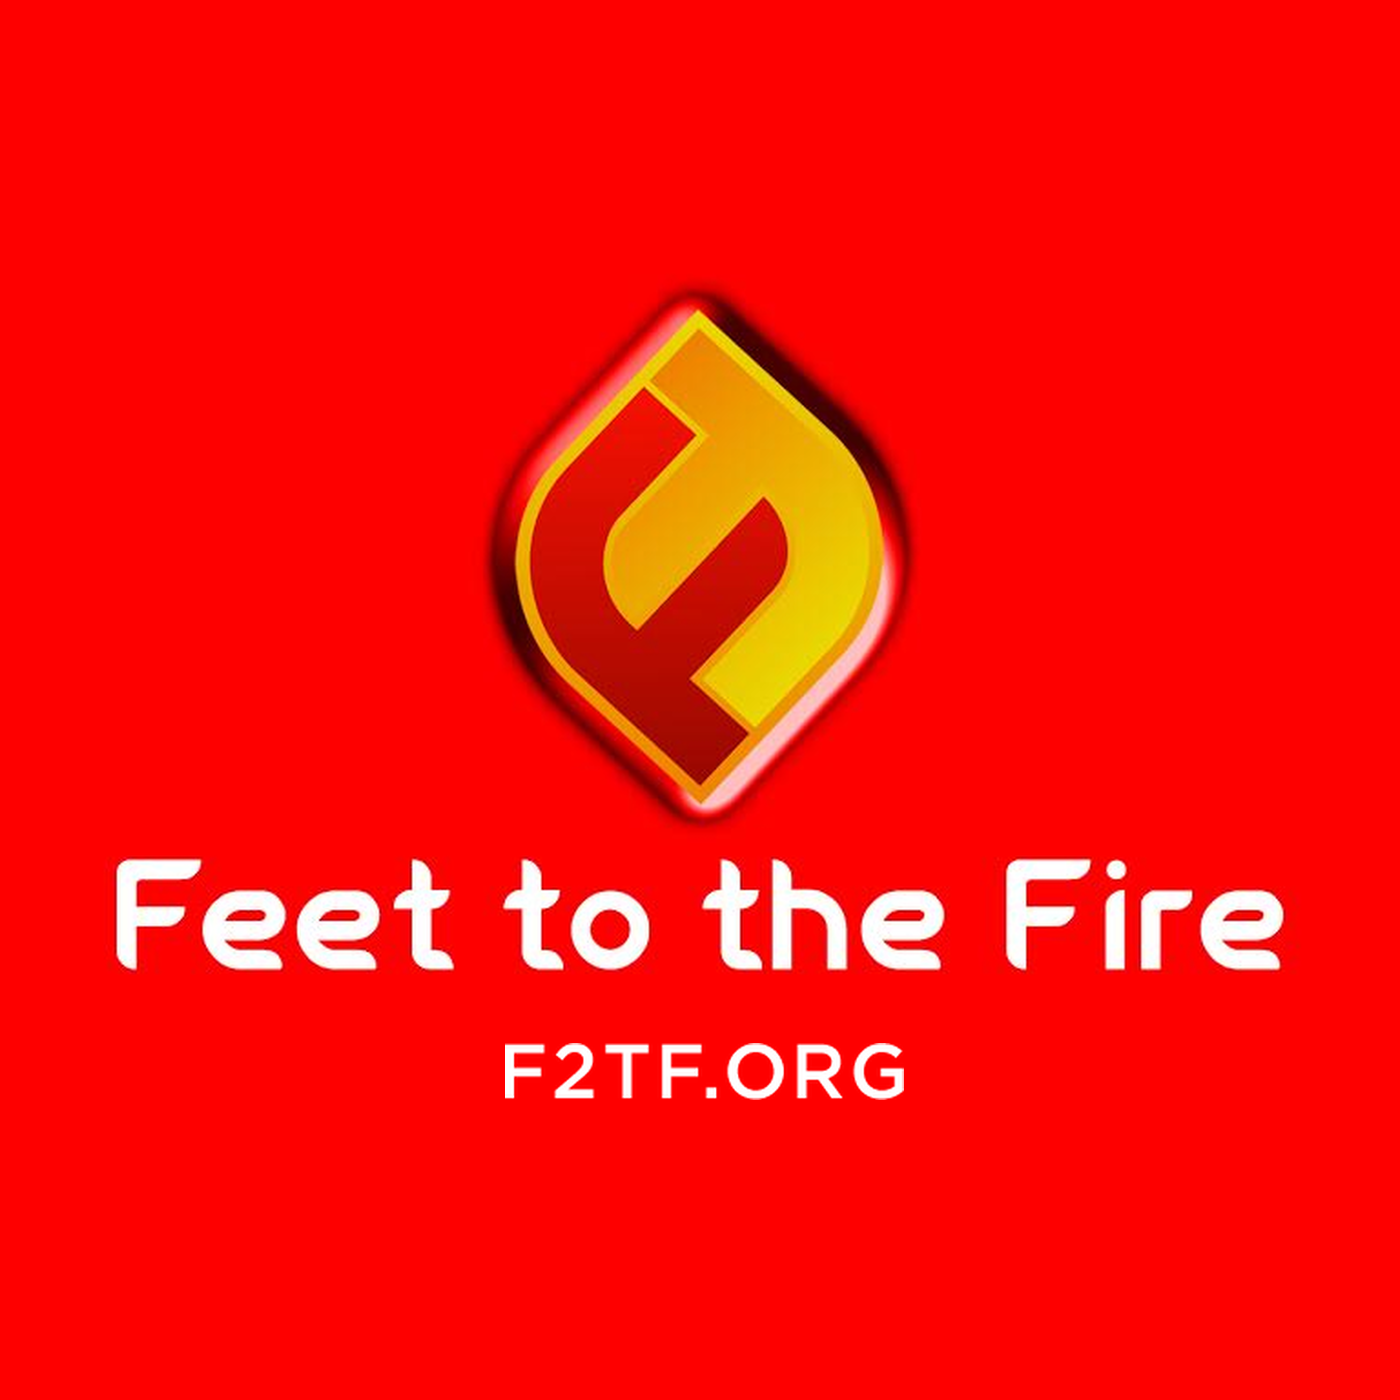 Feet to the Fire Politics: Conservative Talk Show